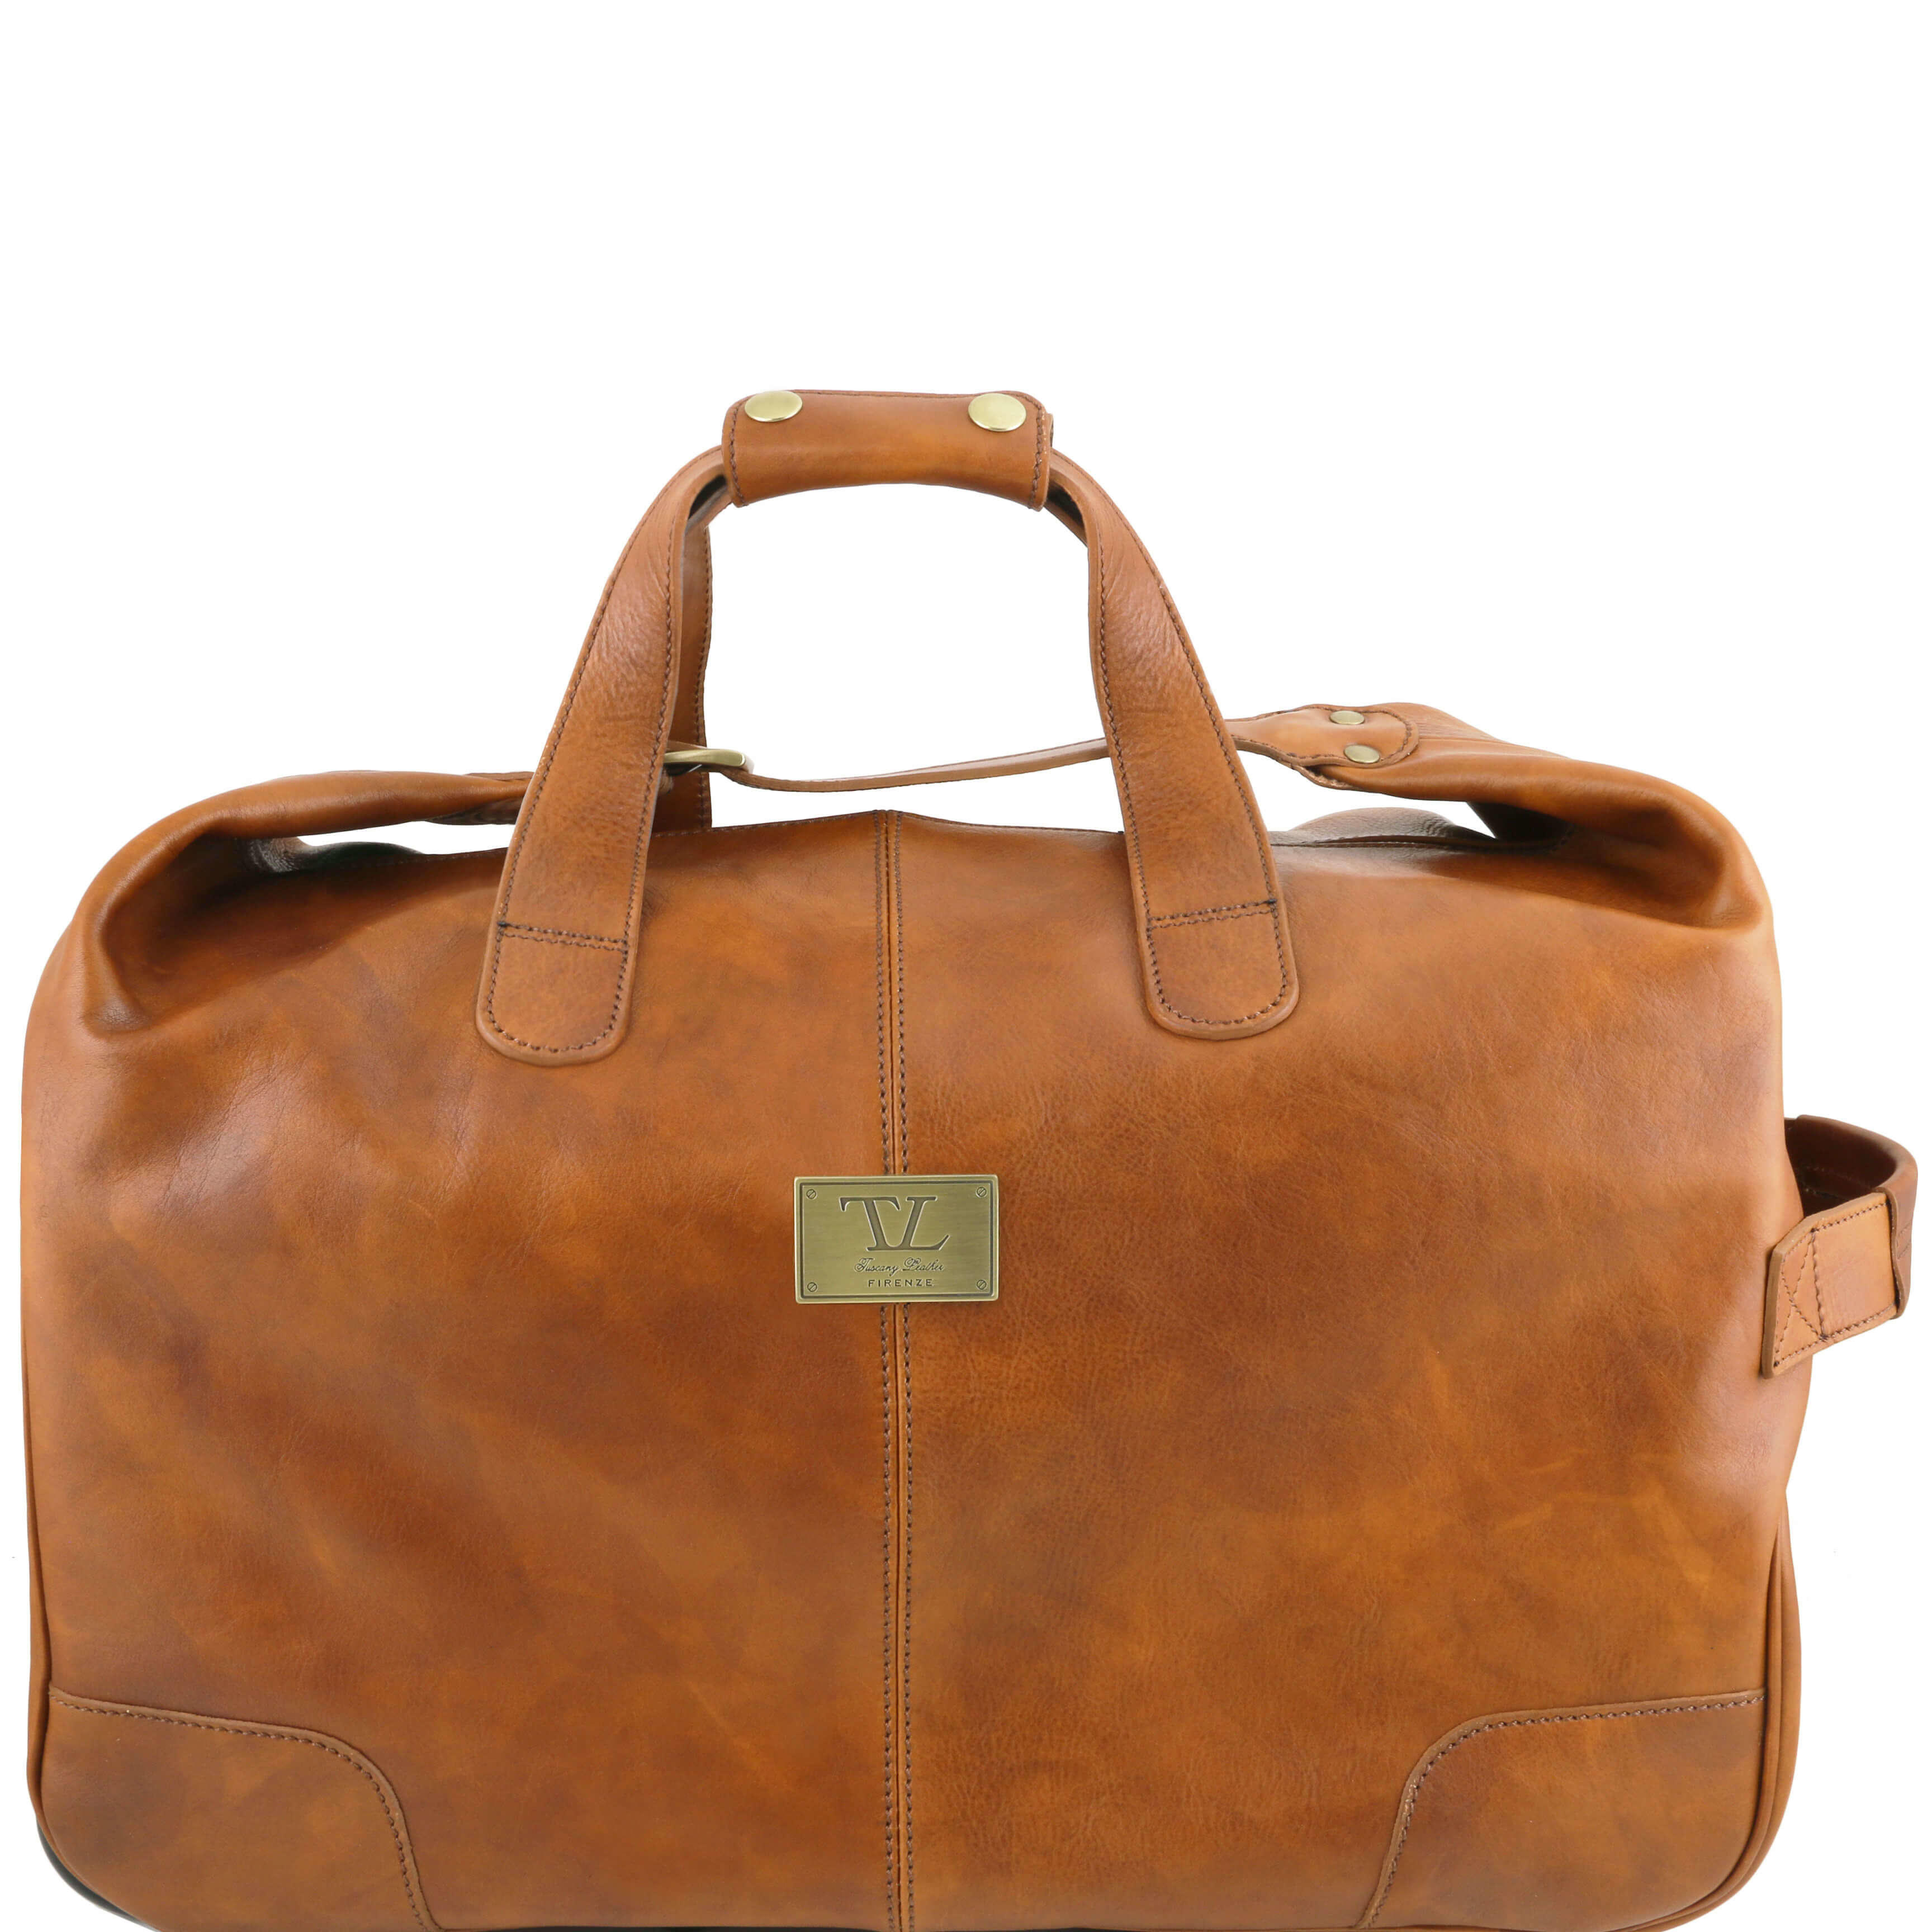 Tuscany Leather Barbados Trolley - Wheeled-Lugguage-Travel-Bag-Holdall-Case - Natural Colour